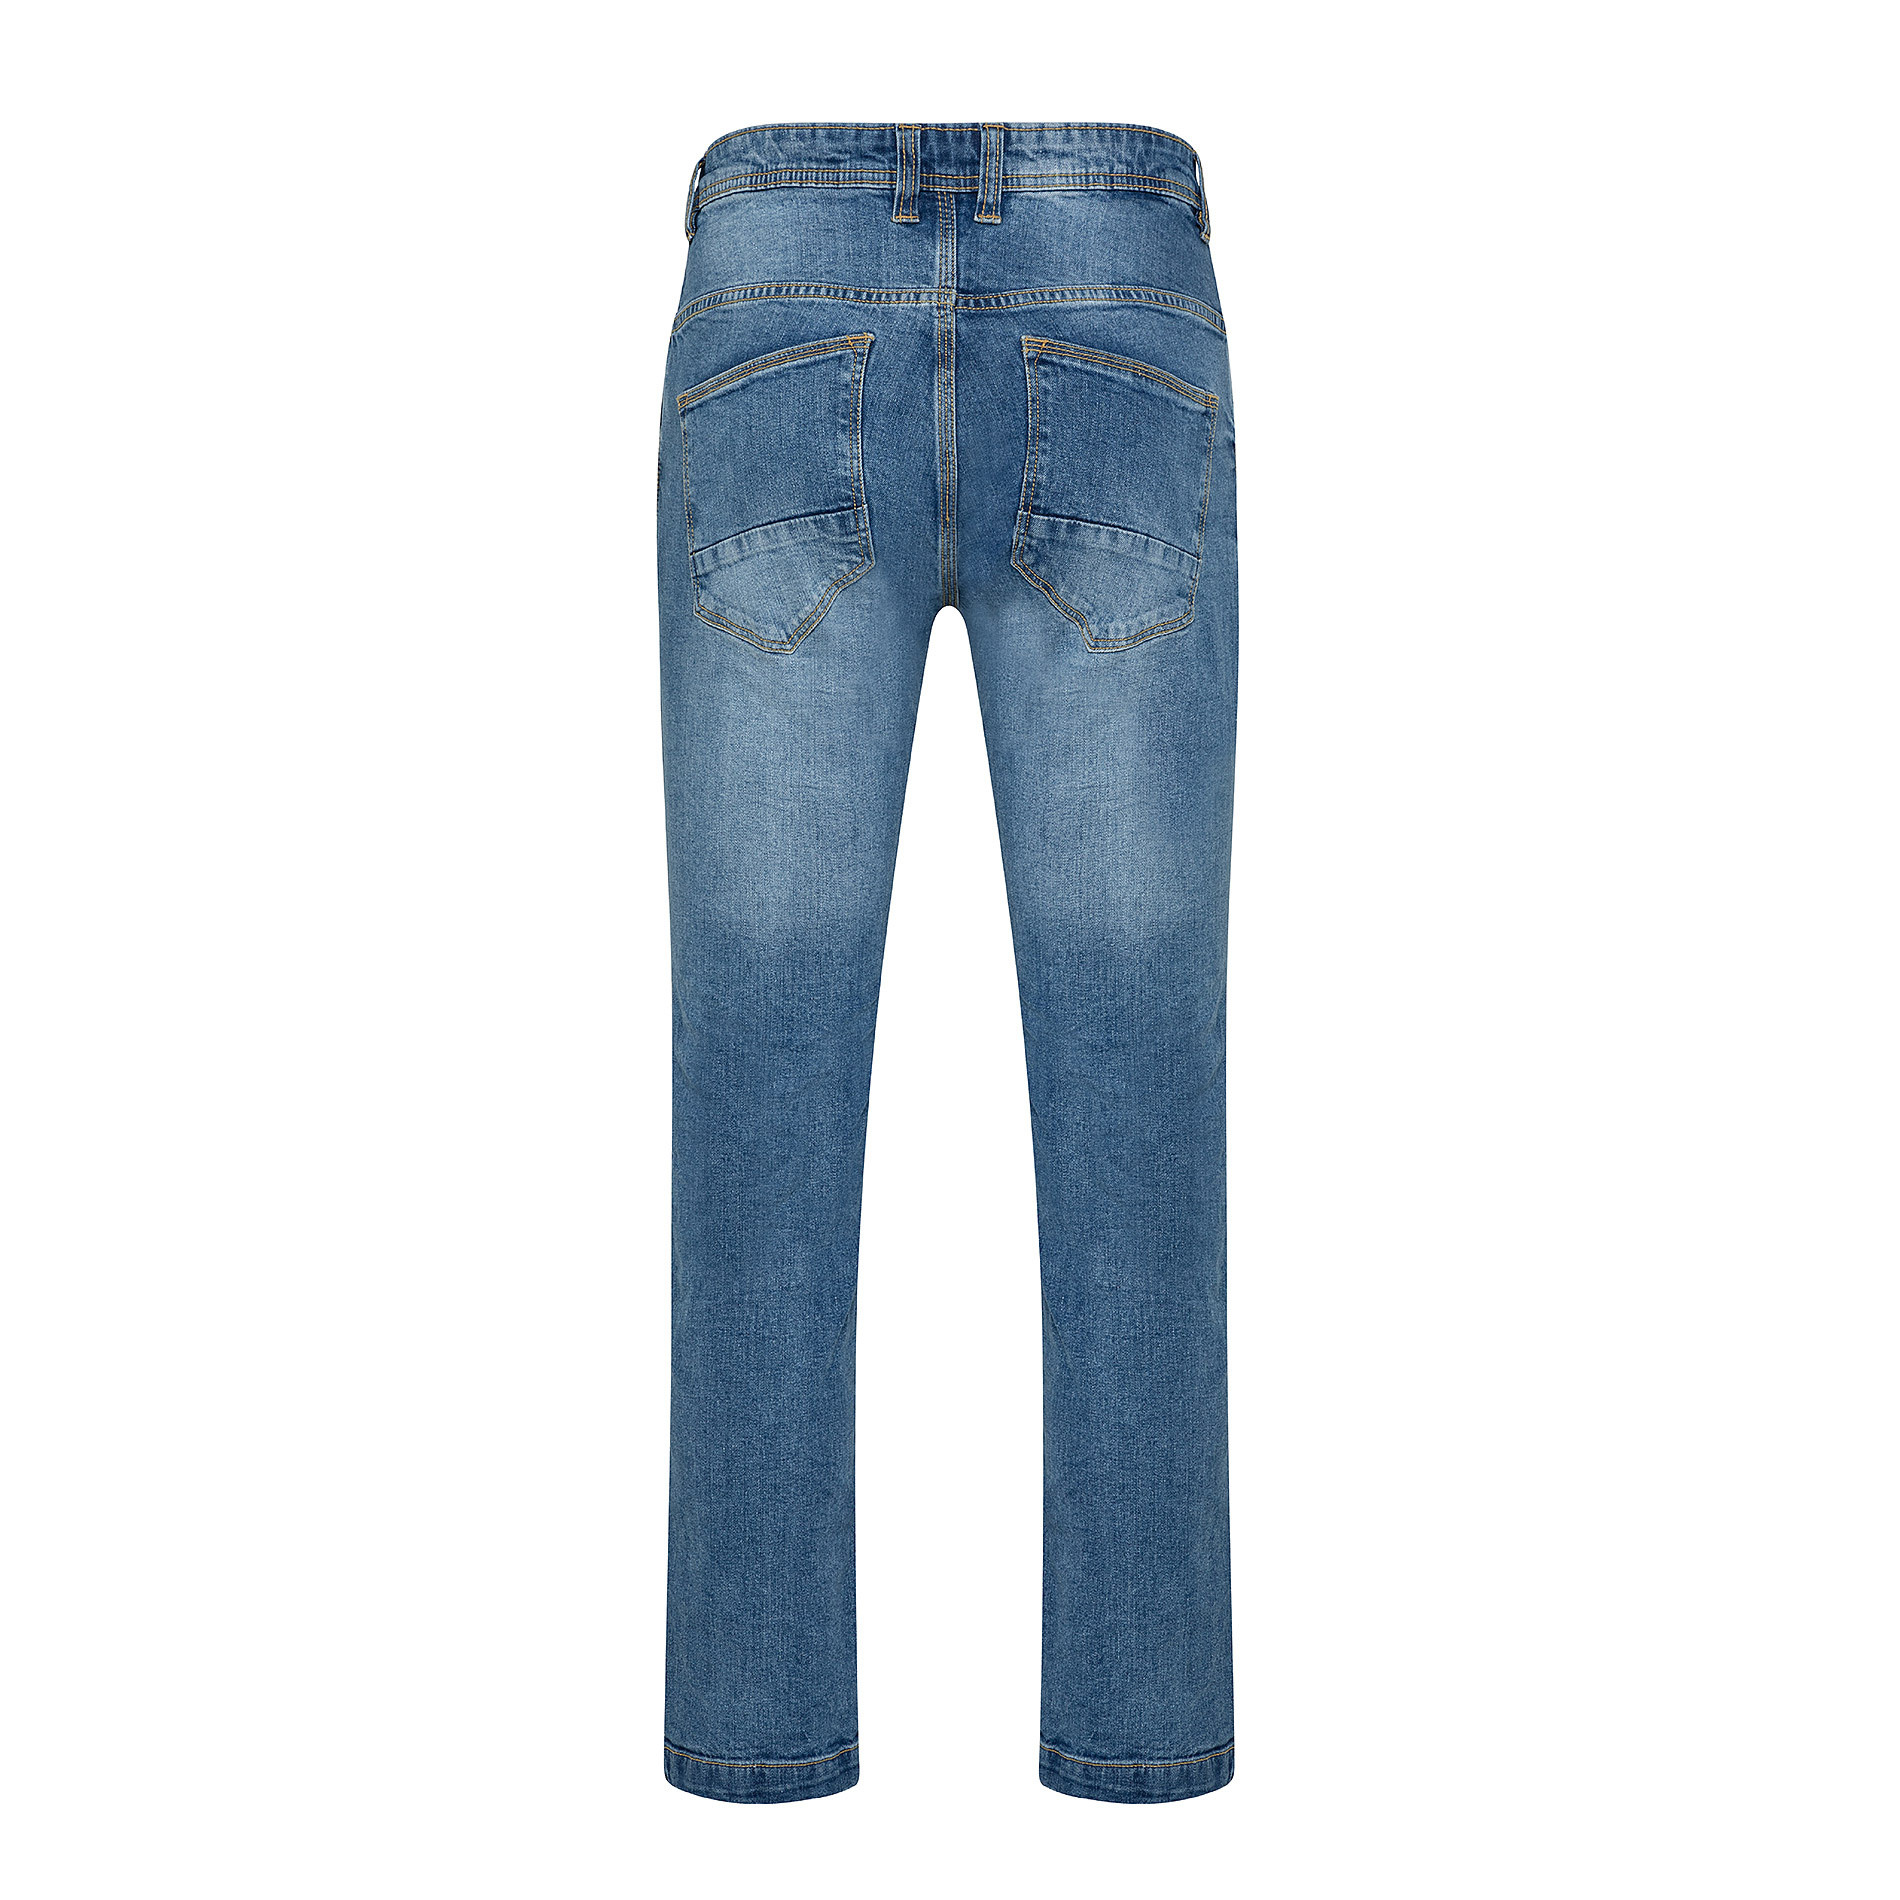 Jeans stretch 5 tasche JCT, Azzurro, large image number 1